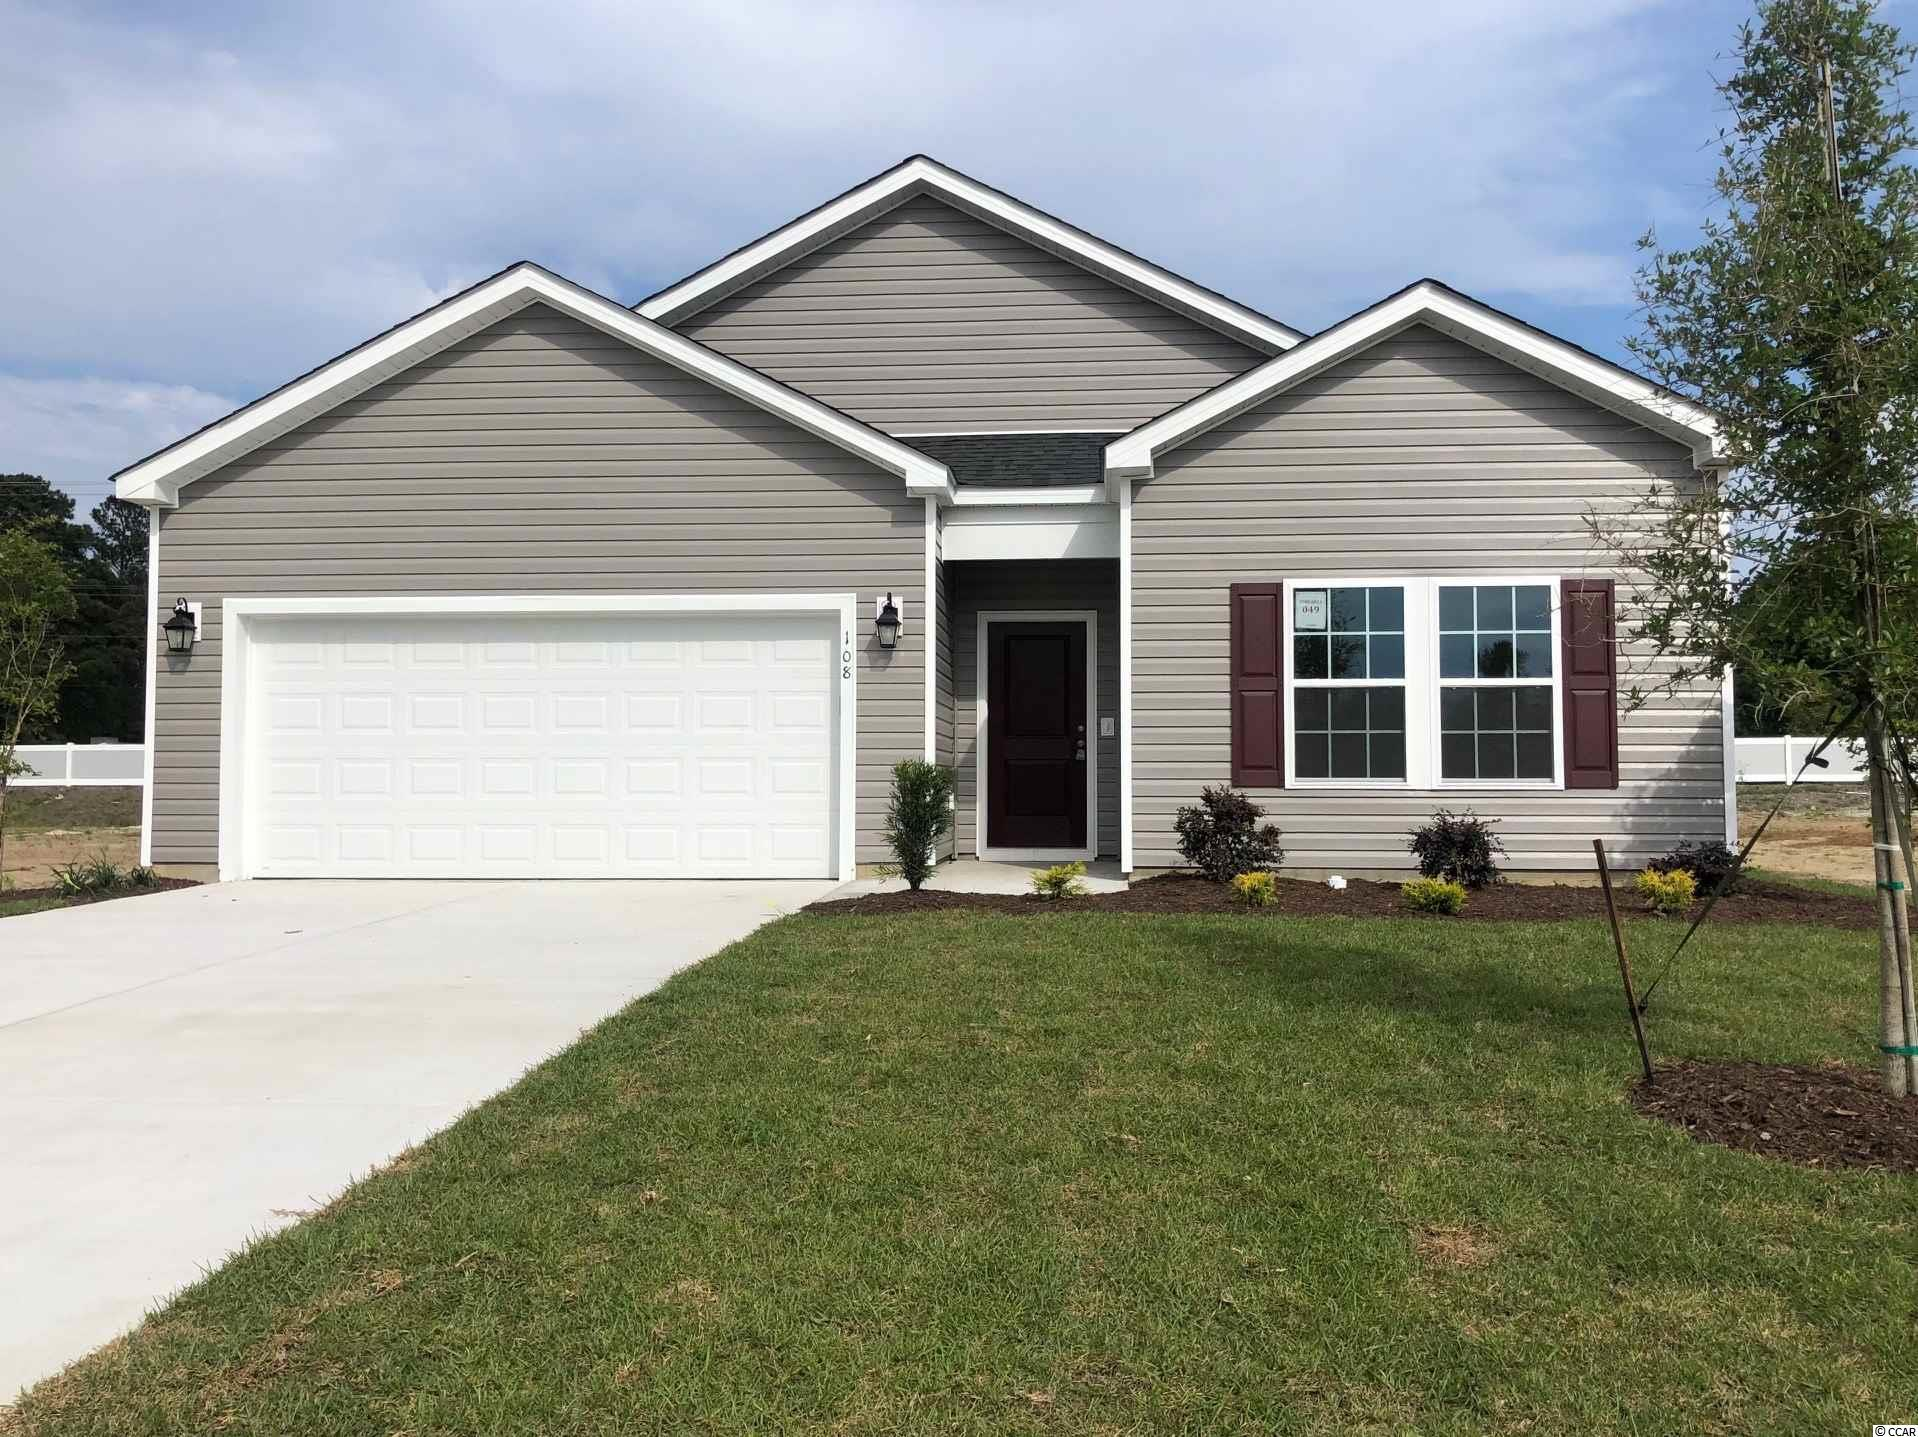 This is a To Be Built home.  Stop by our Sales Center for details.    Hampton Park is a natural Gas Community located on 707 near 544. We are located minutes from beaches, shopping, golf, restaurants, medical facilities and more. This is a small 80 home community that will feature lots that view the pond, as well as backyards that have wooded views.    *Photos are of model home and do not reflect color selections and options of actual unit for sale.*